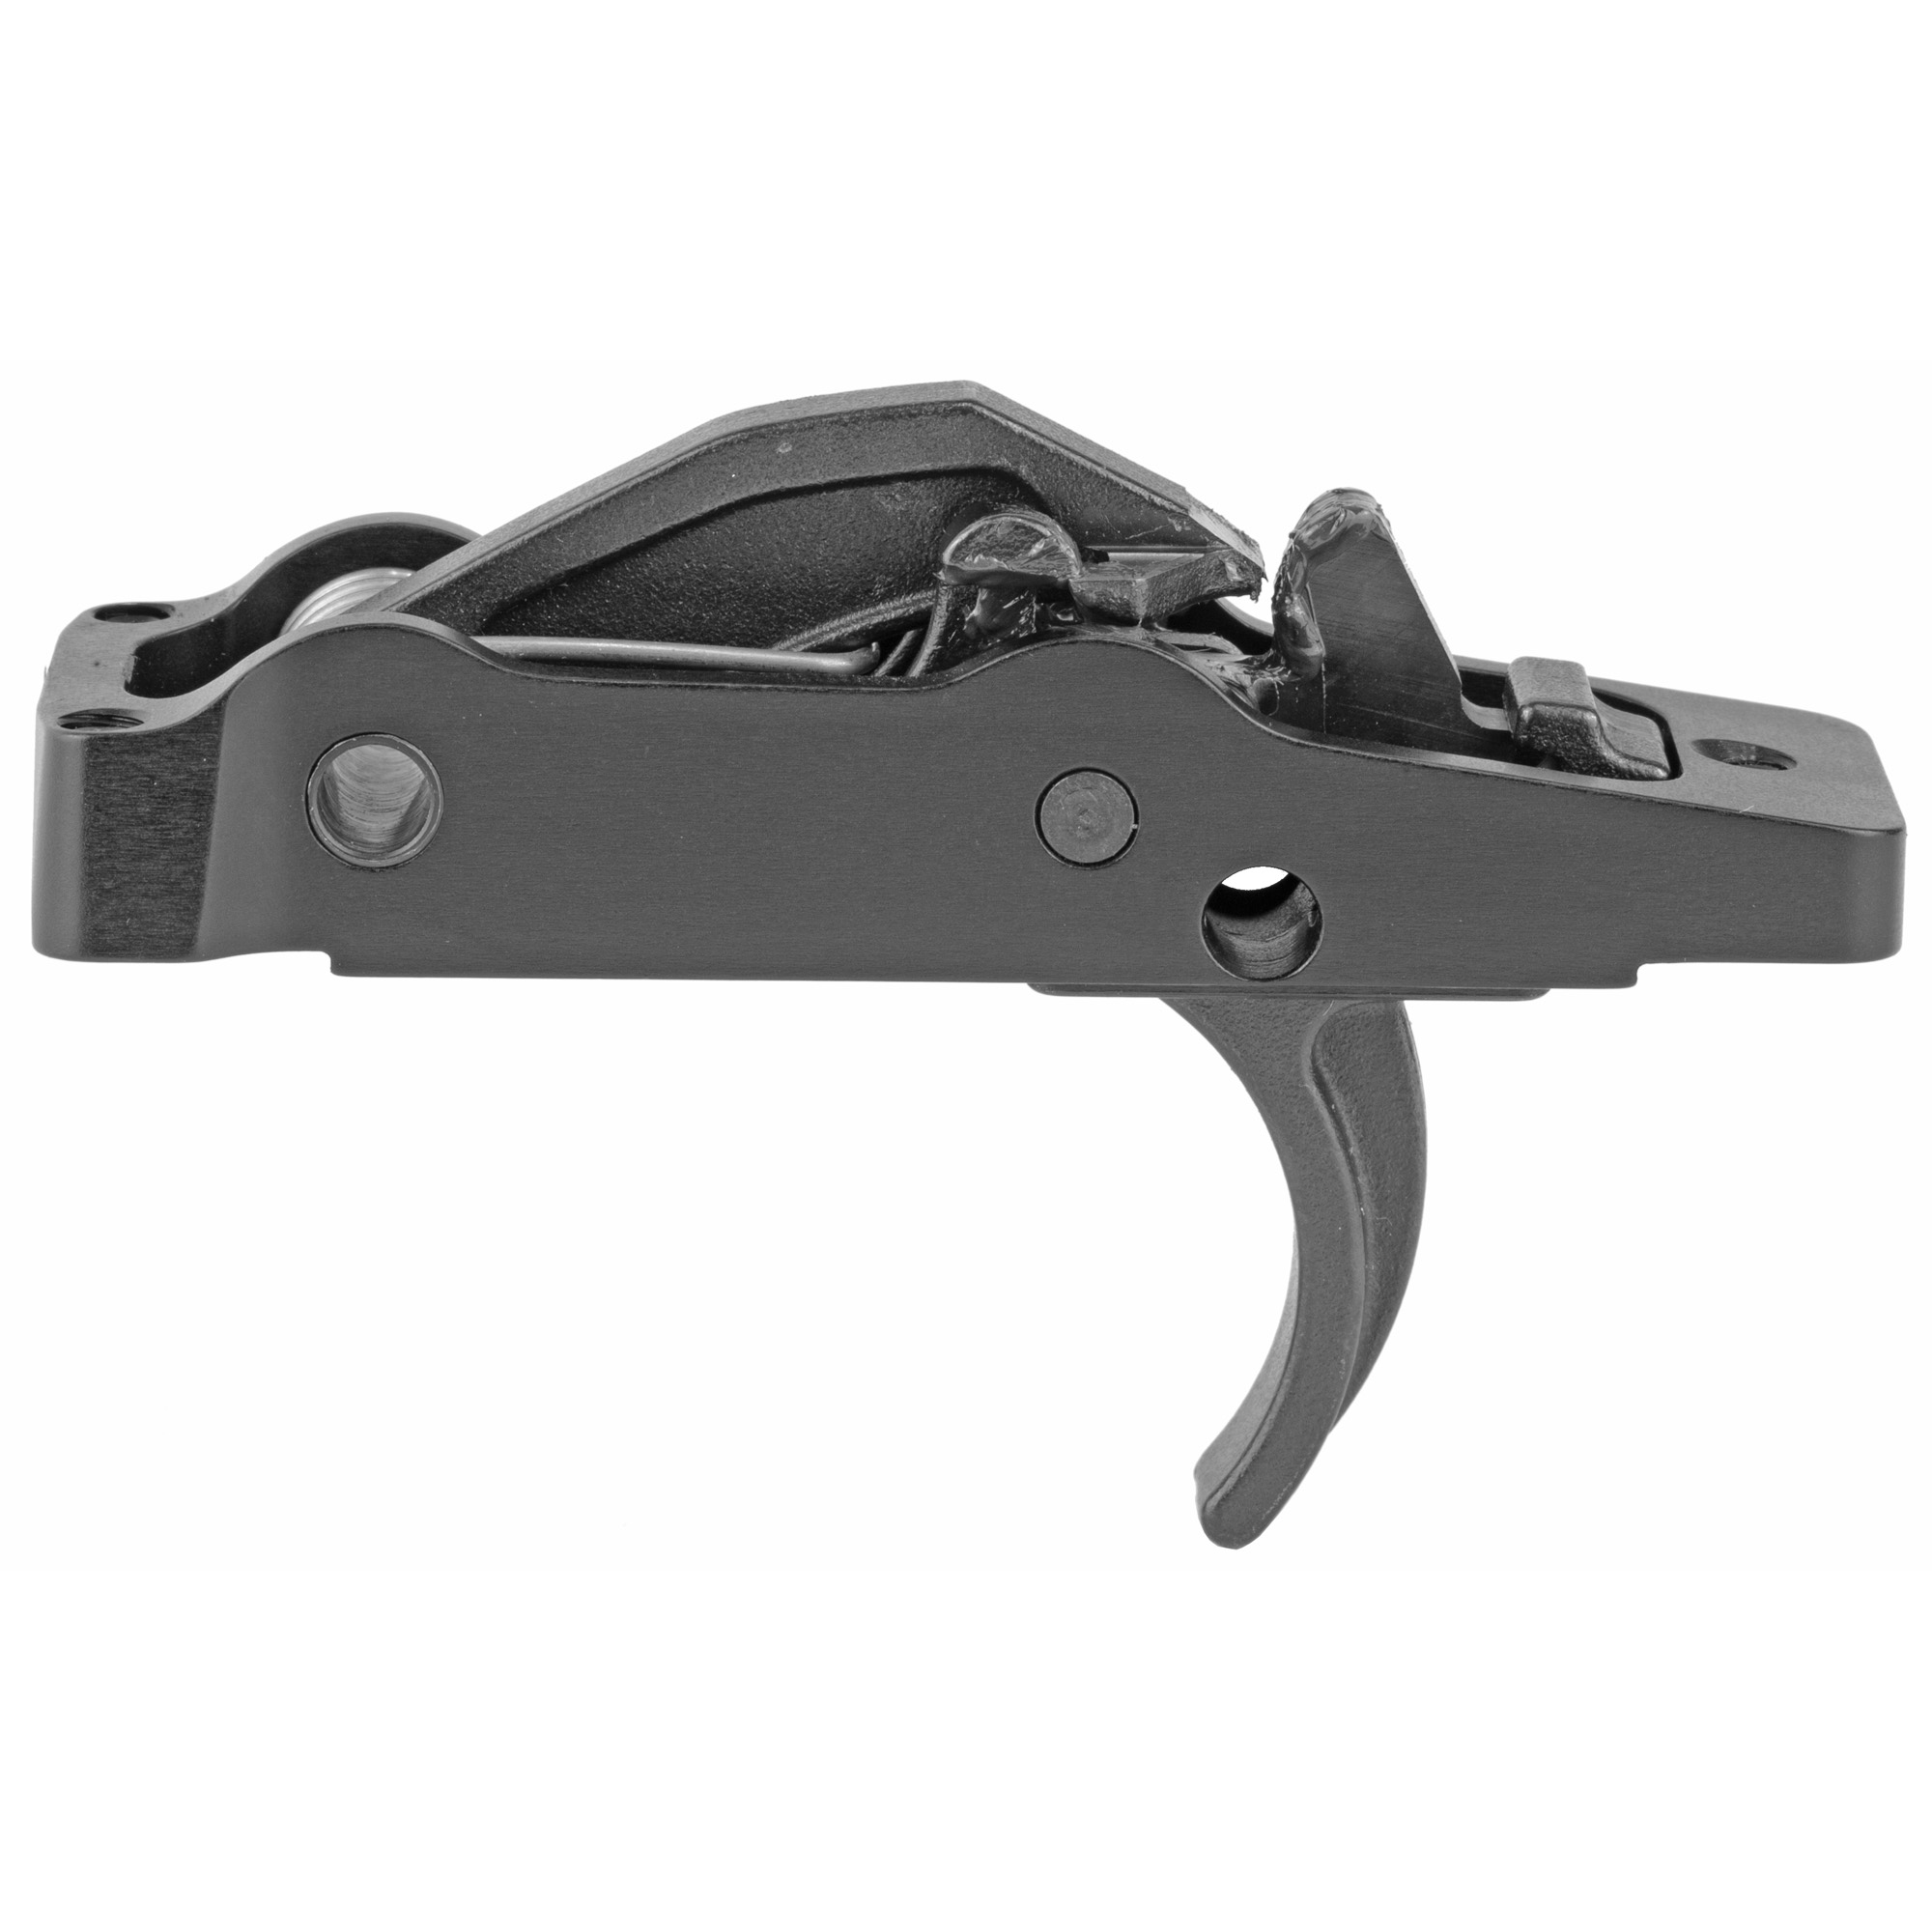 """CMC's AK trigger group is the ultimate upgrade for your AK47 variant. With its 100% modular"""" CNC-machined"""" and easy to install design"""" this trigger group will give your AK the cleanest"""" most reliable trigger pull it has ever had."""